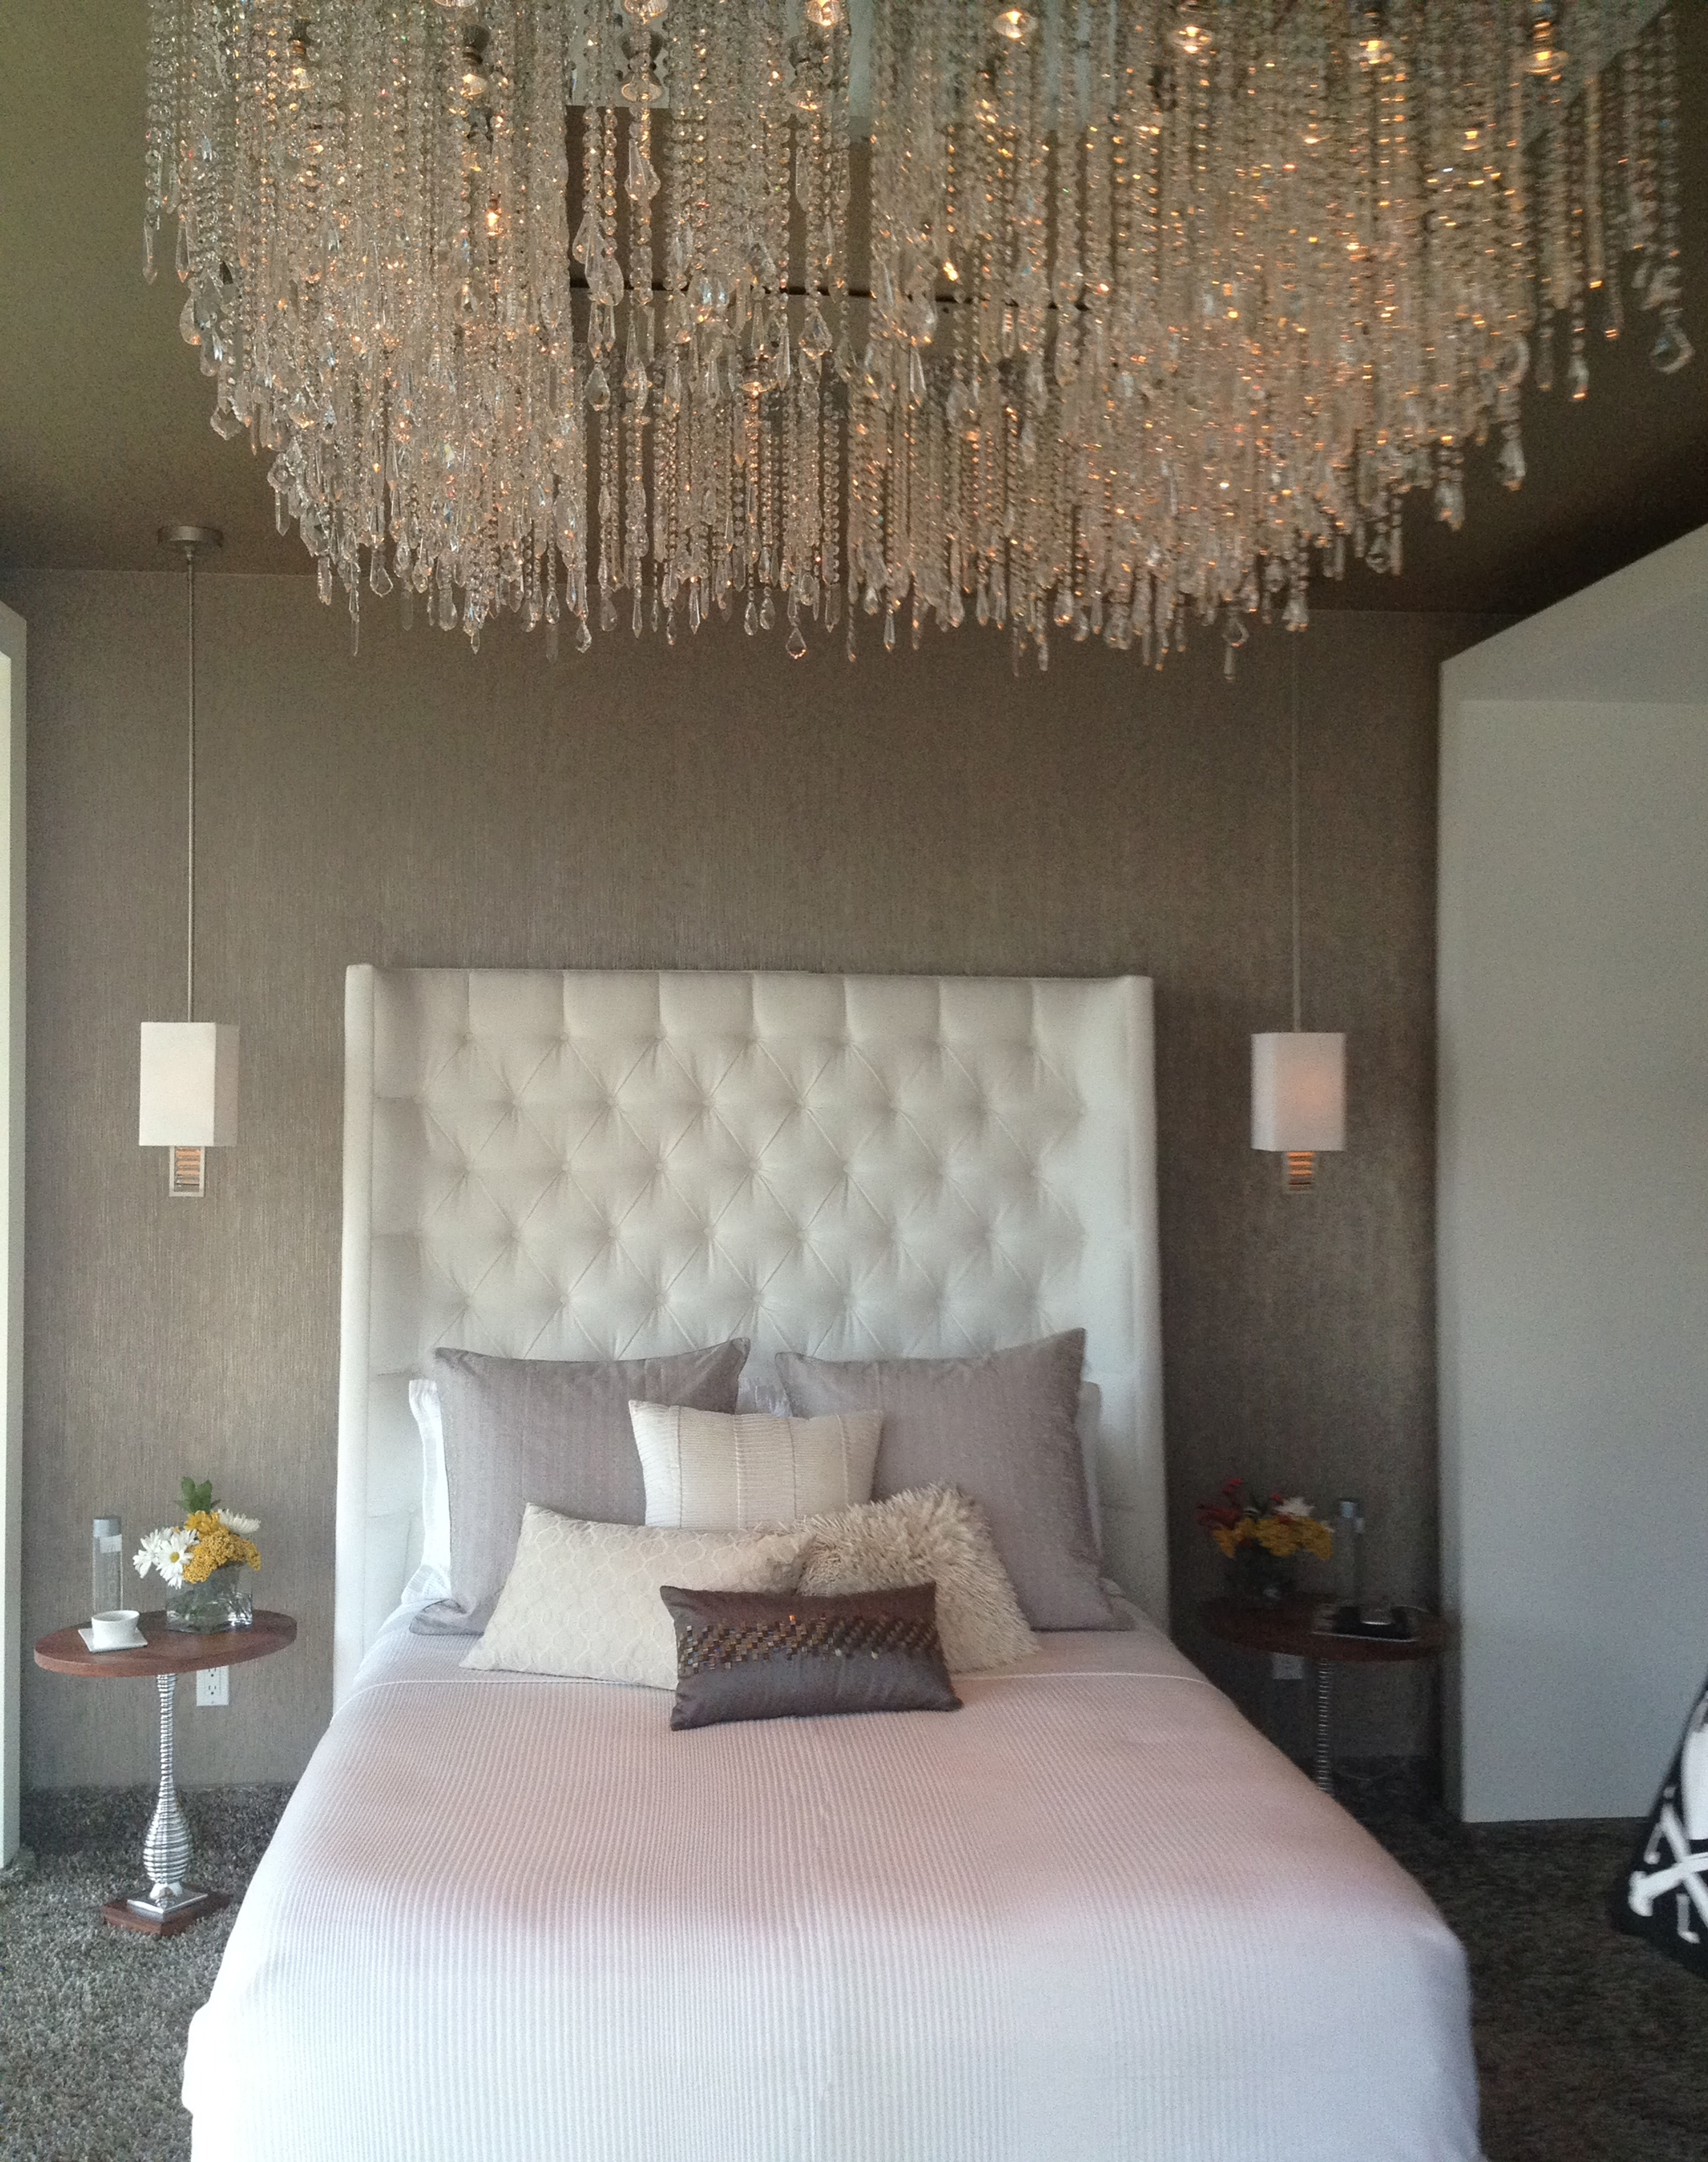 Glam Above How To Deck Out Your Ceilings Home decor